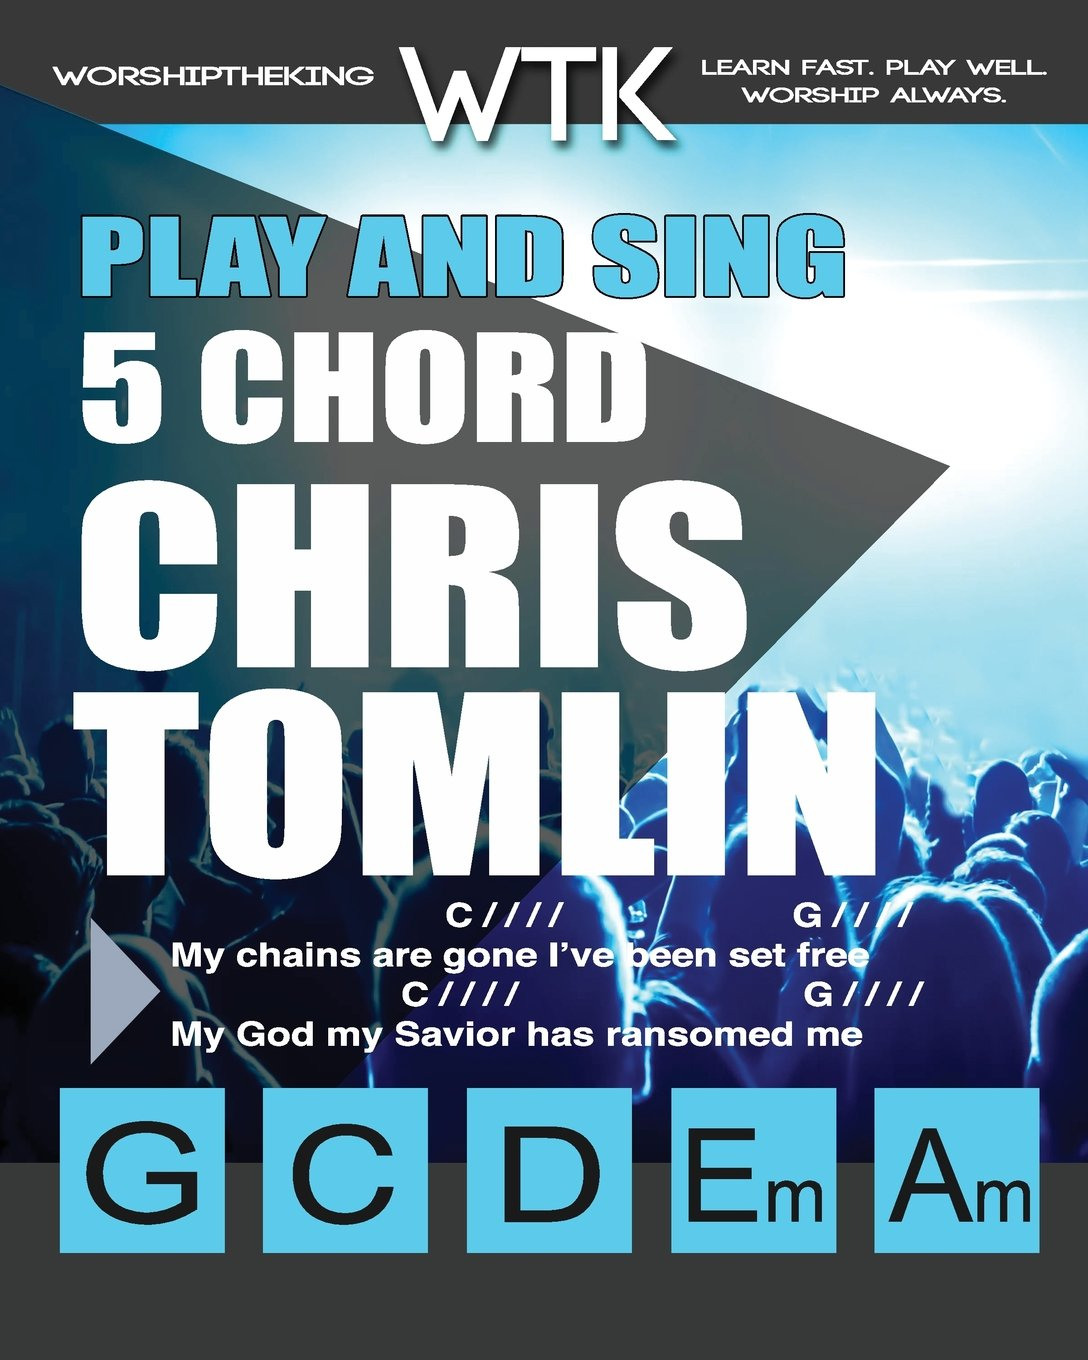 Play And Sing 5 Chord Chris Tomlin Songs For Worship Easy To Play